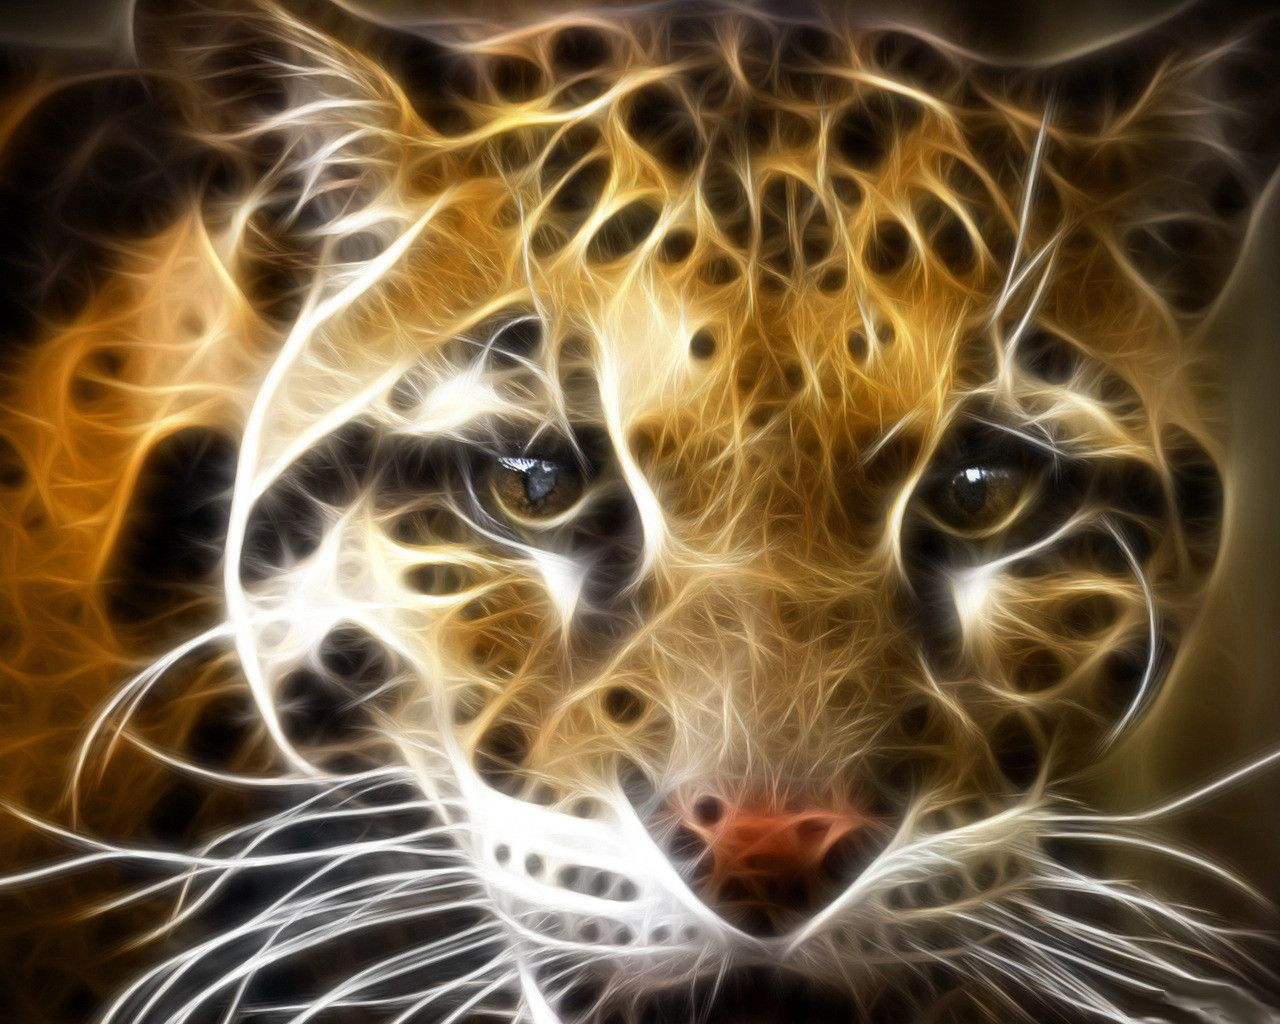 Download this awesome wallpaper Wallpaper Cave Animals